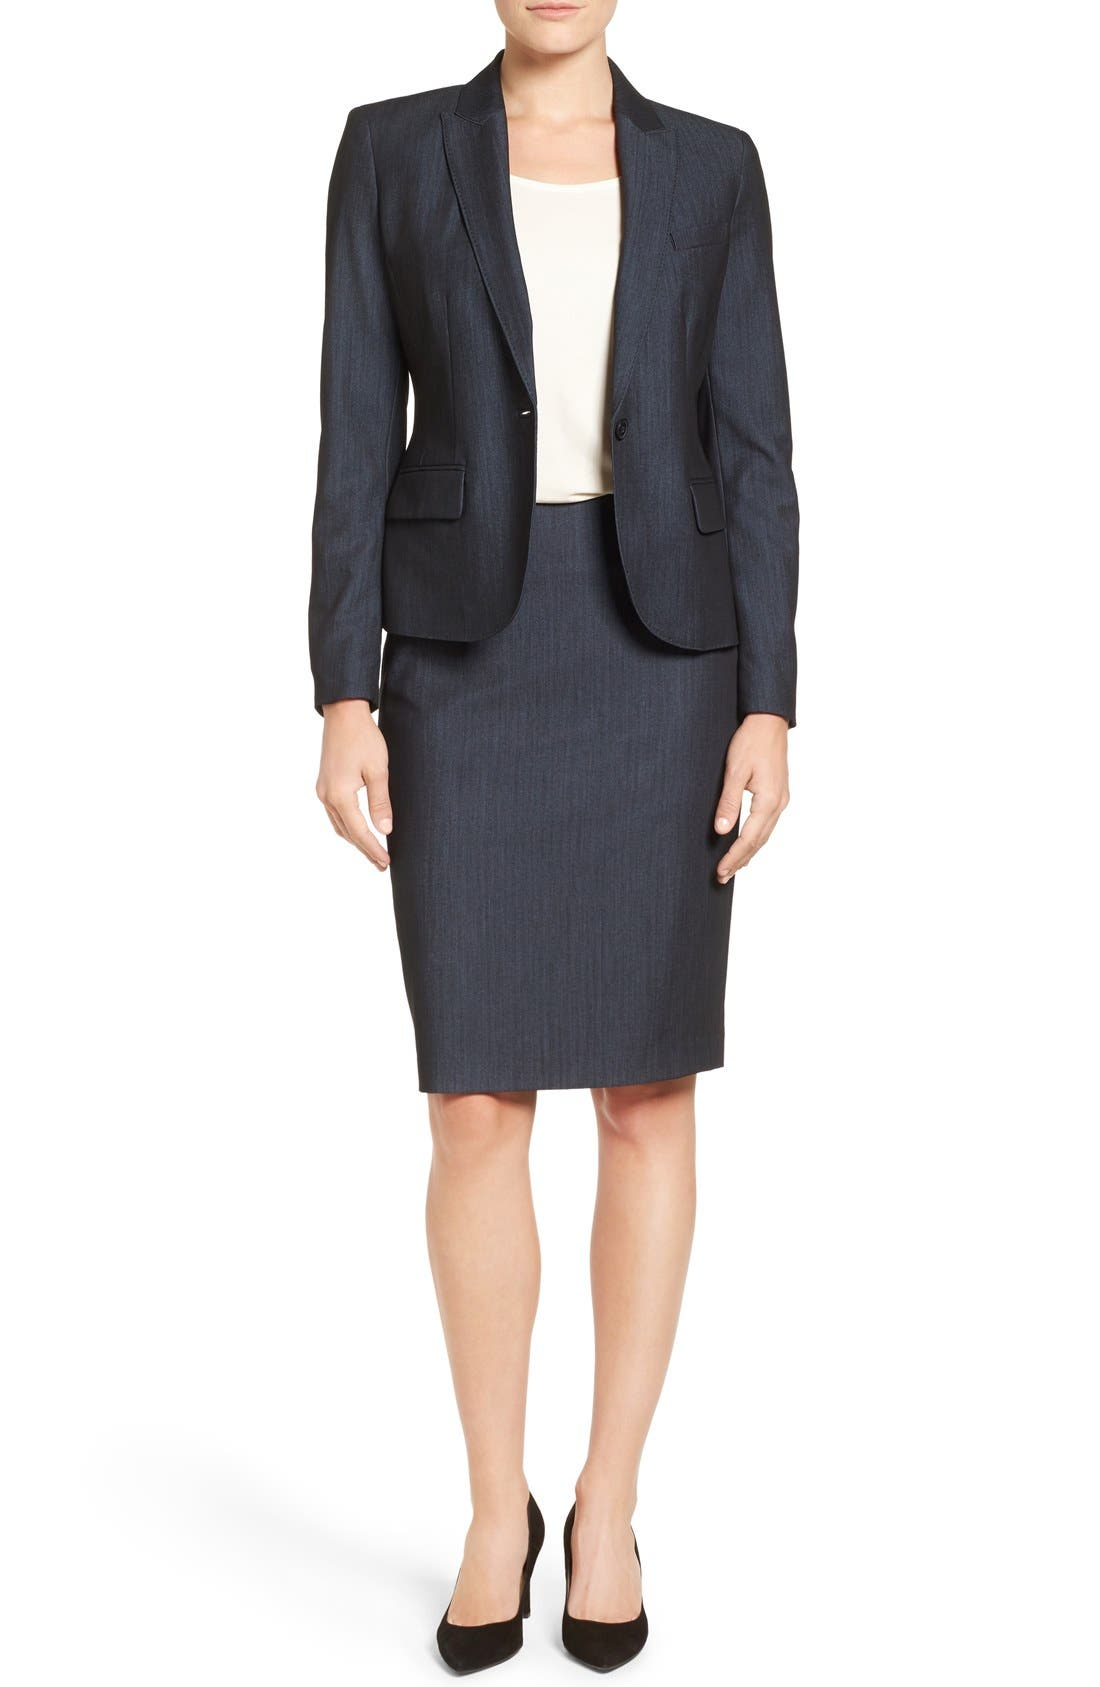 ANNE KLEIN, Twill One-Button Jacket, Alternate thumbnail 6, color, 400